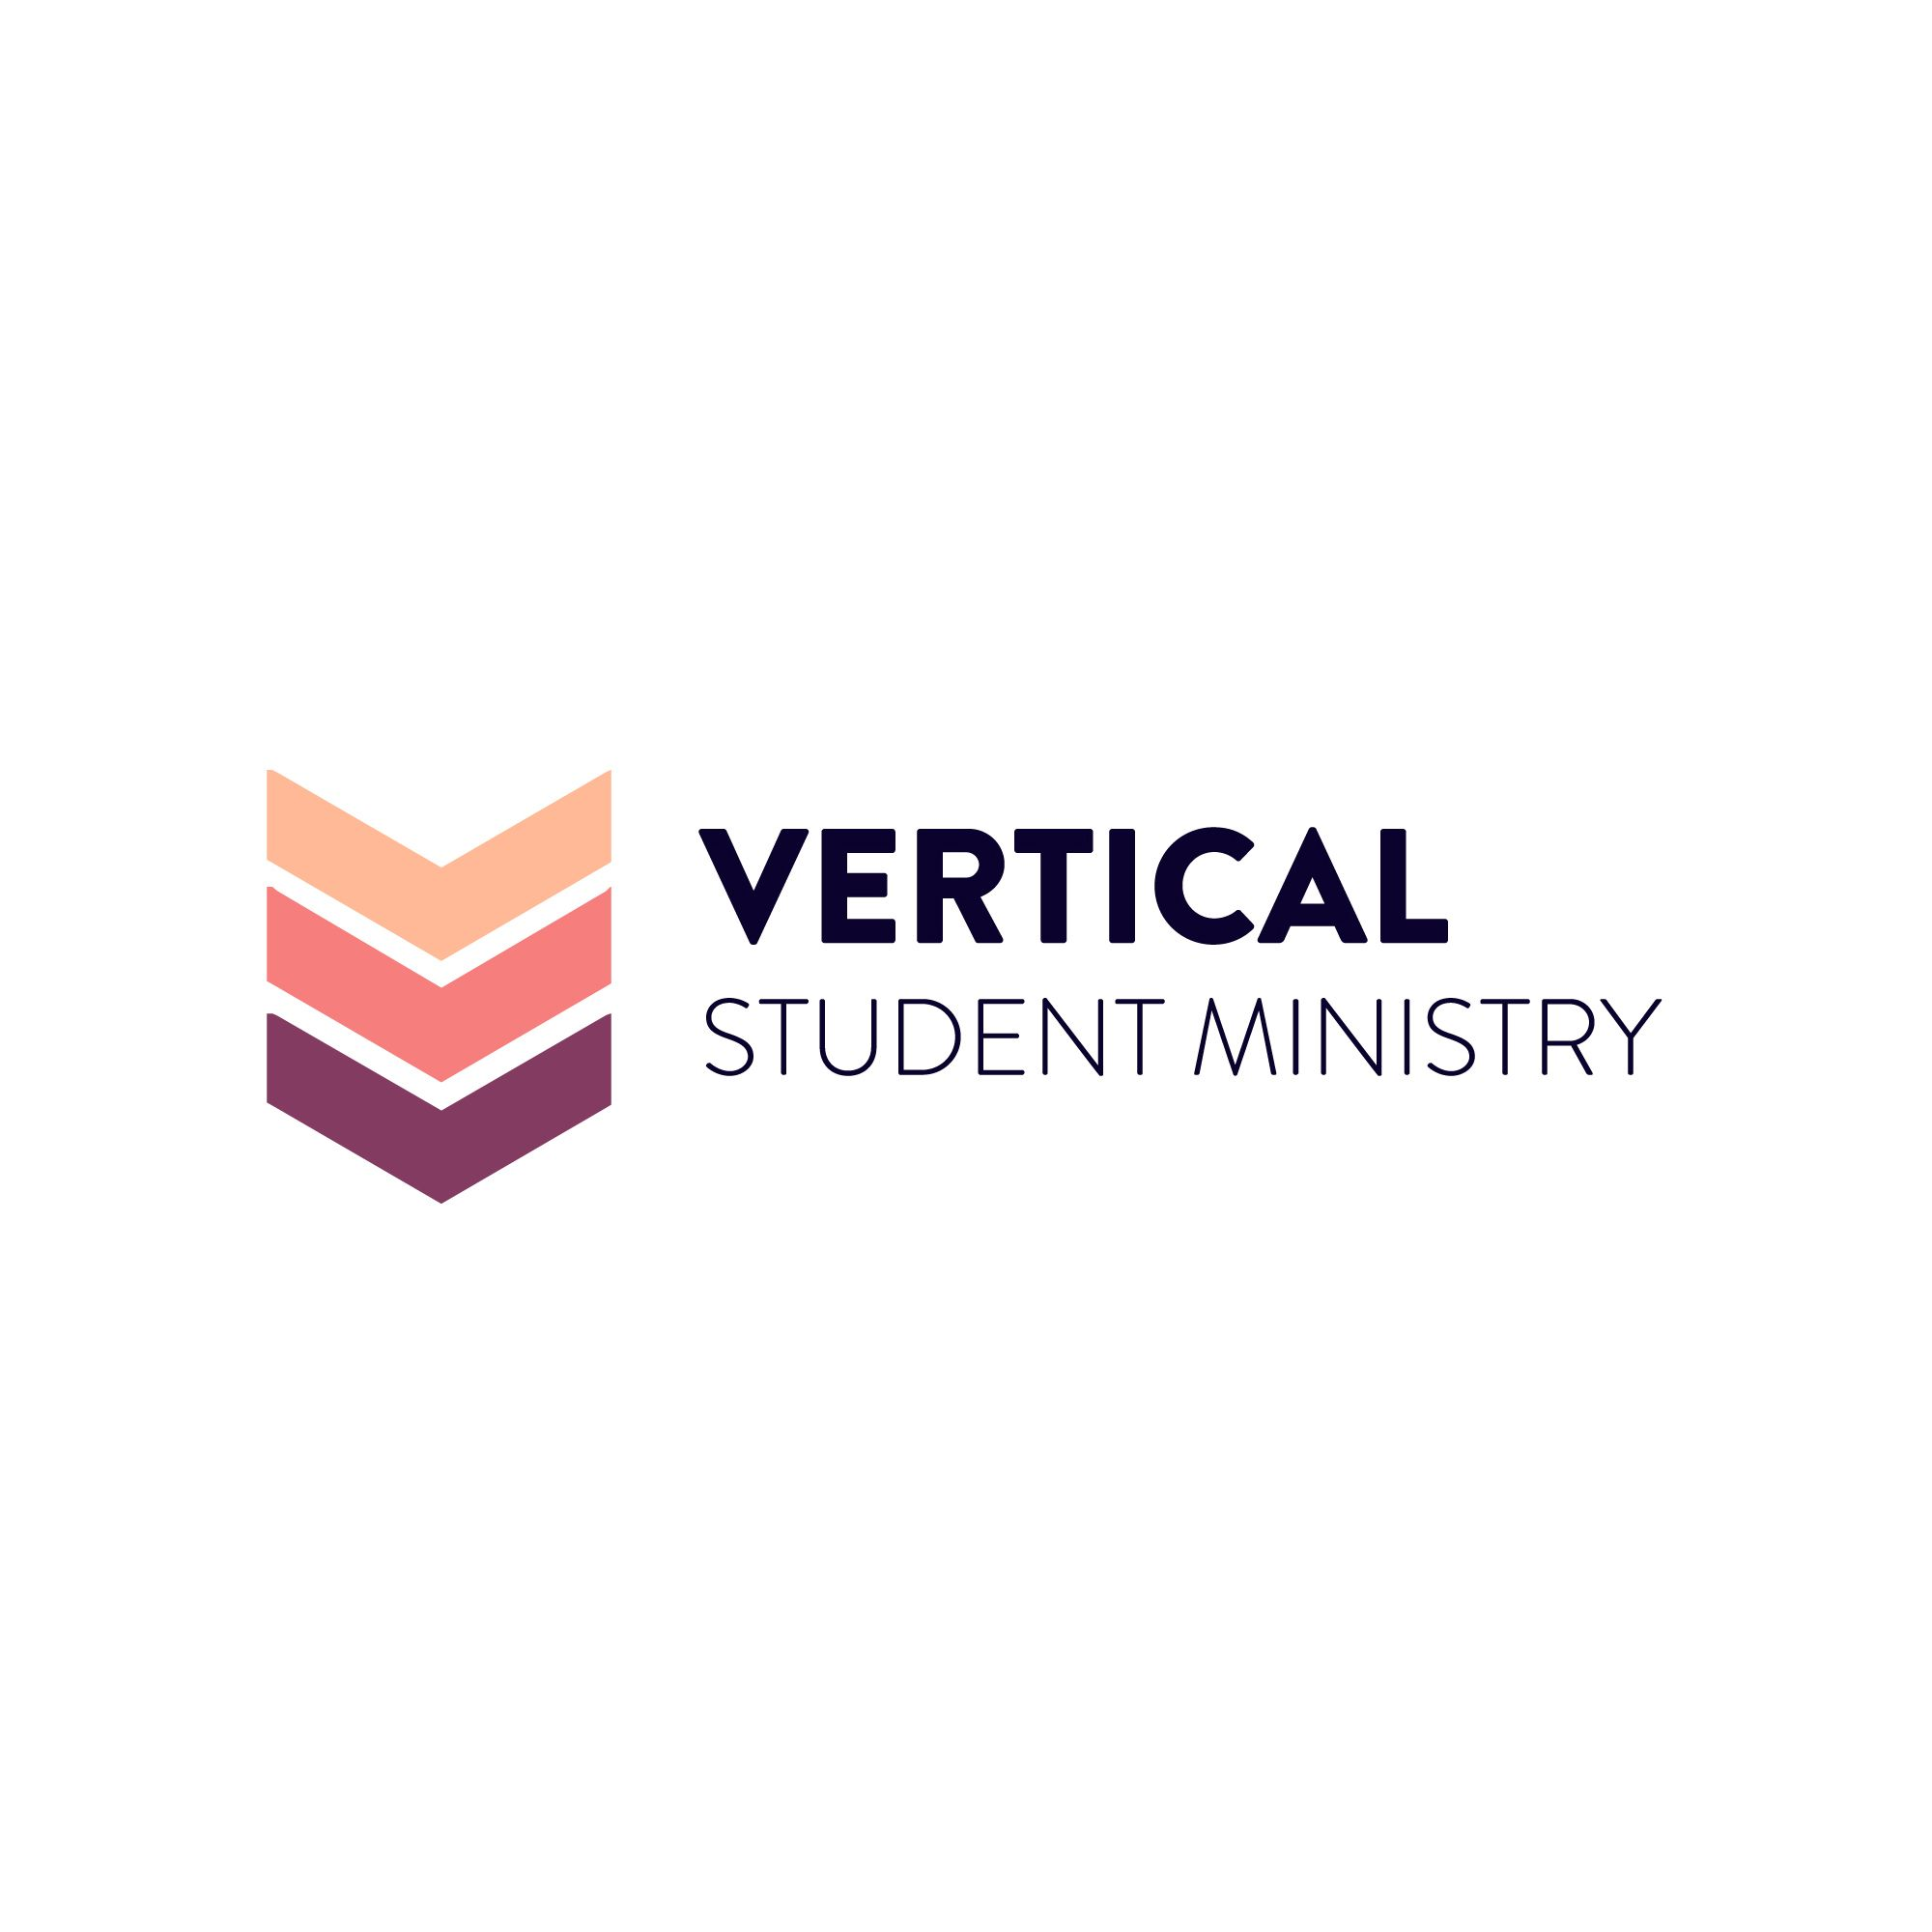 Vertical Student Ministry - Youth Group Logos | Student ...